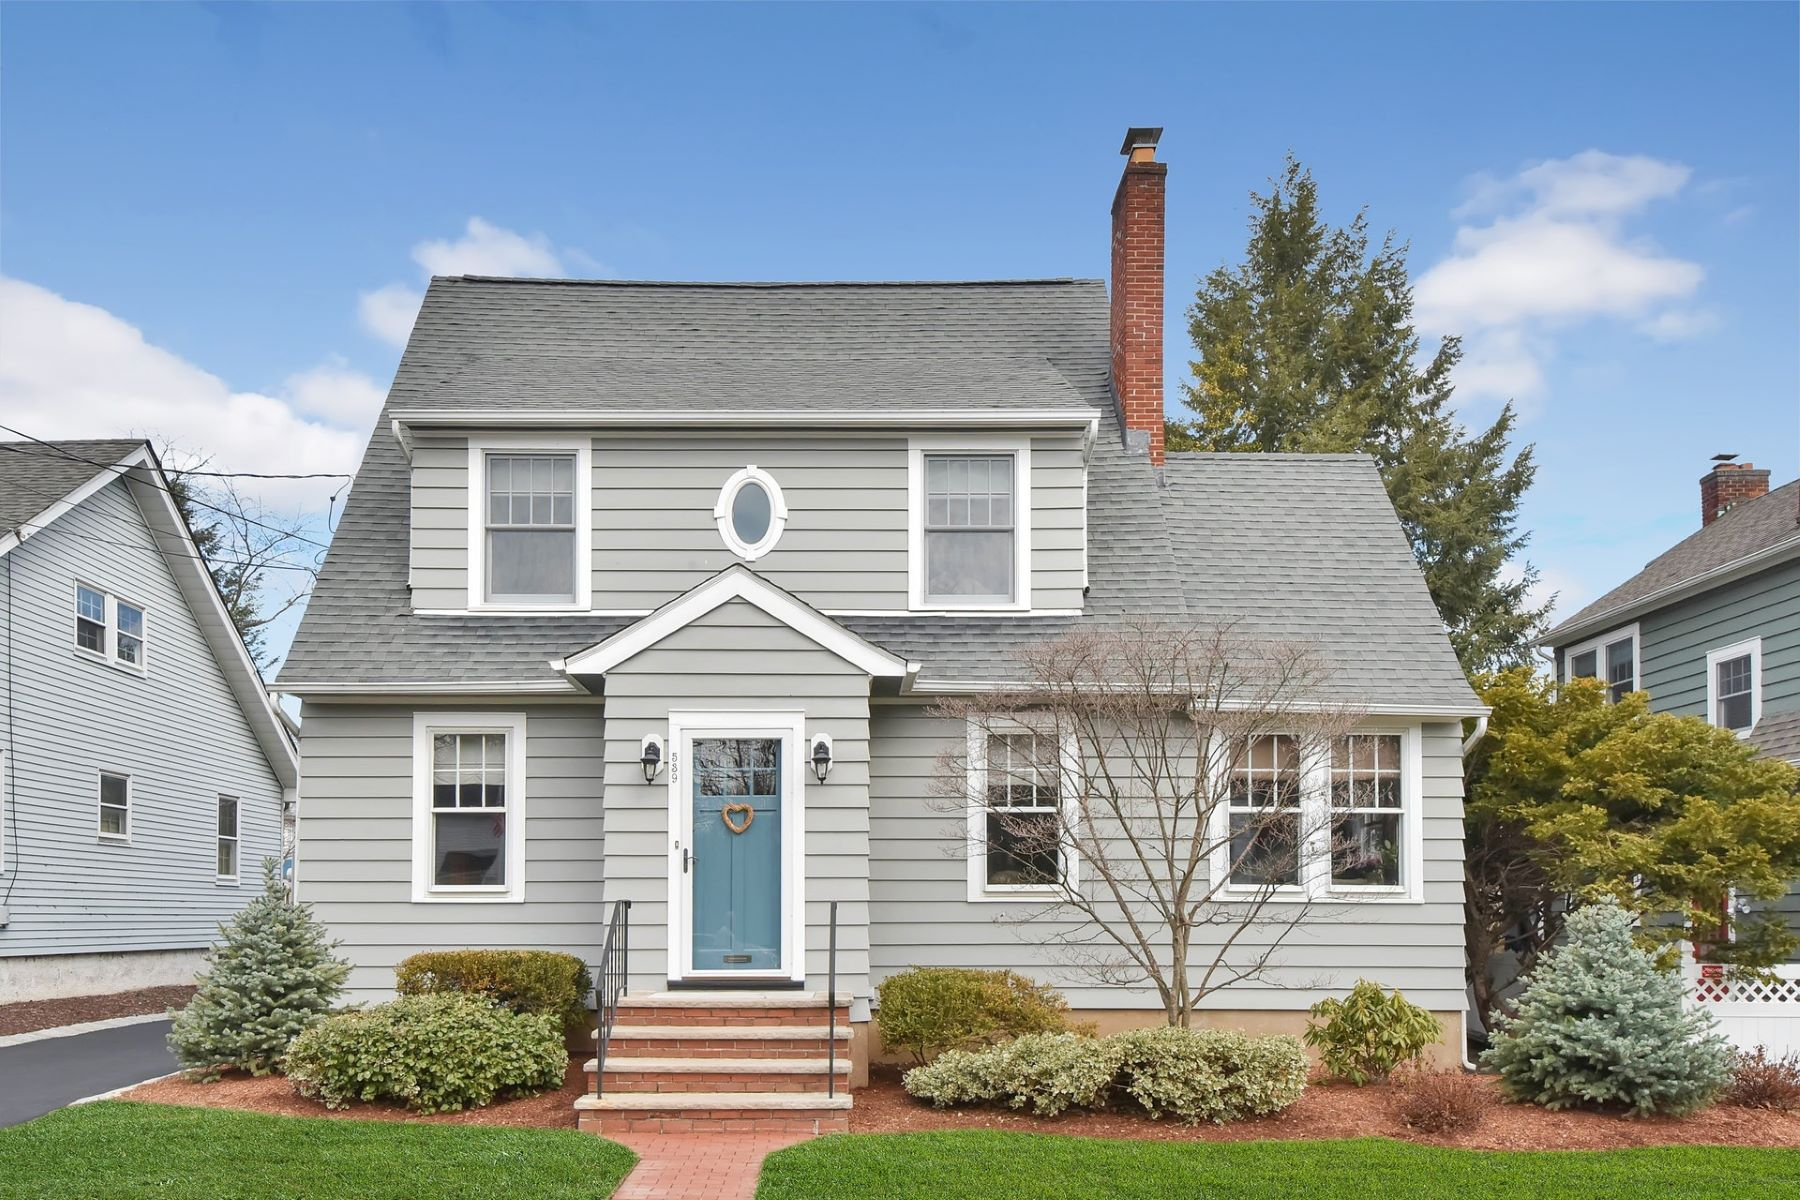 Single Family Home for Sale at A Gracious Three Bedroom Colonial In The Somerville School District. 539 Fairway Road, Ridgewood, New Jersey 07450 United States